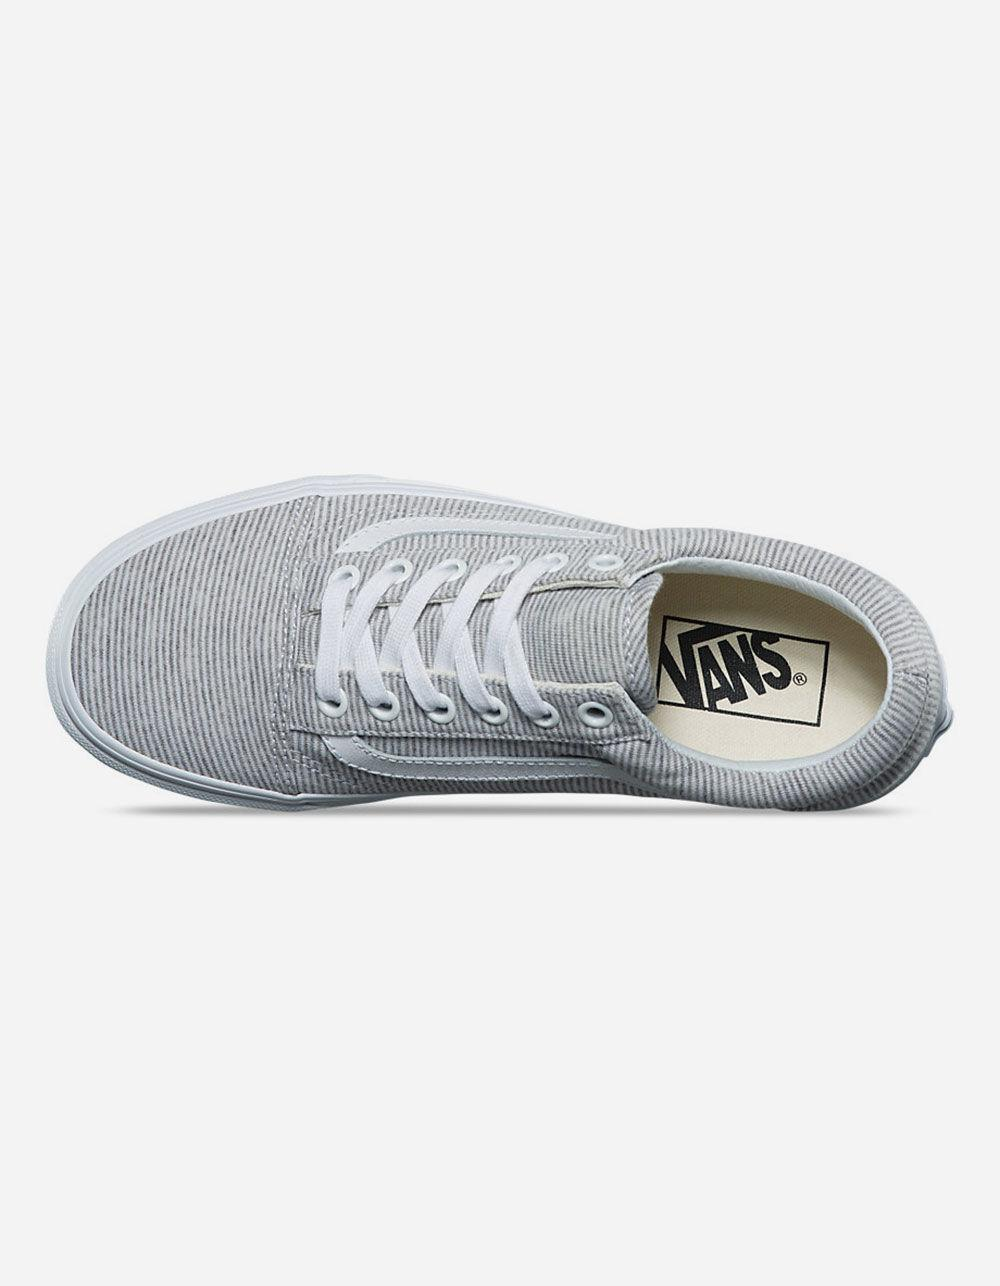 0d2cc53e09 Lyst - Vans Jersey Old Skool Grey   True White Womens Shoes in Gray